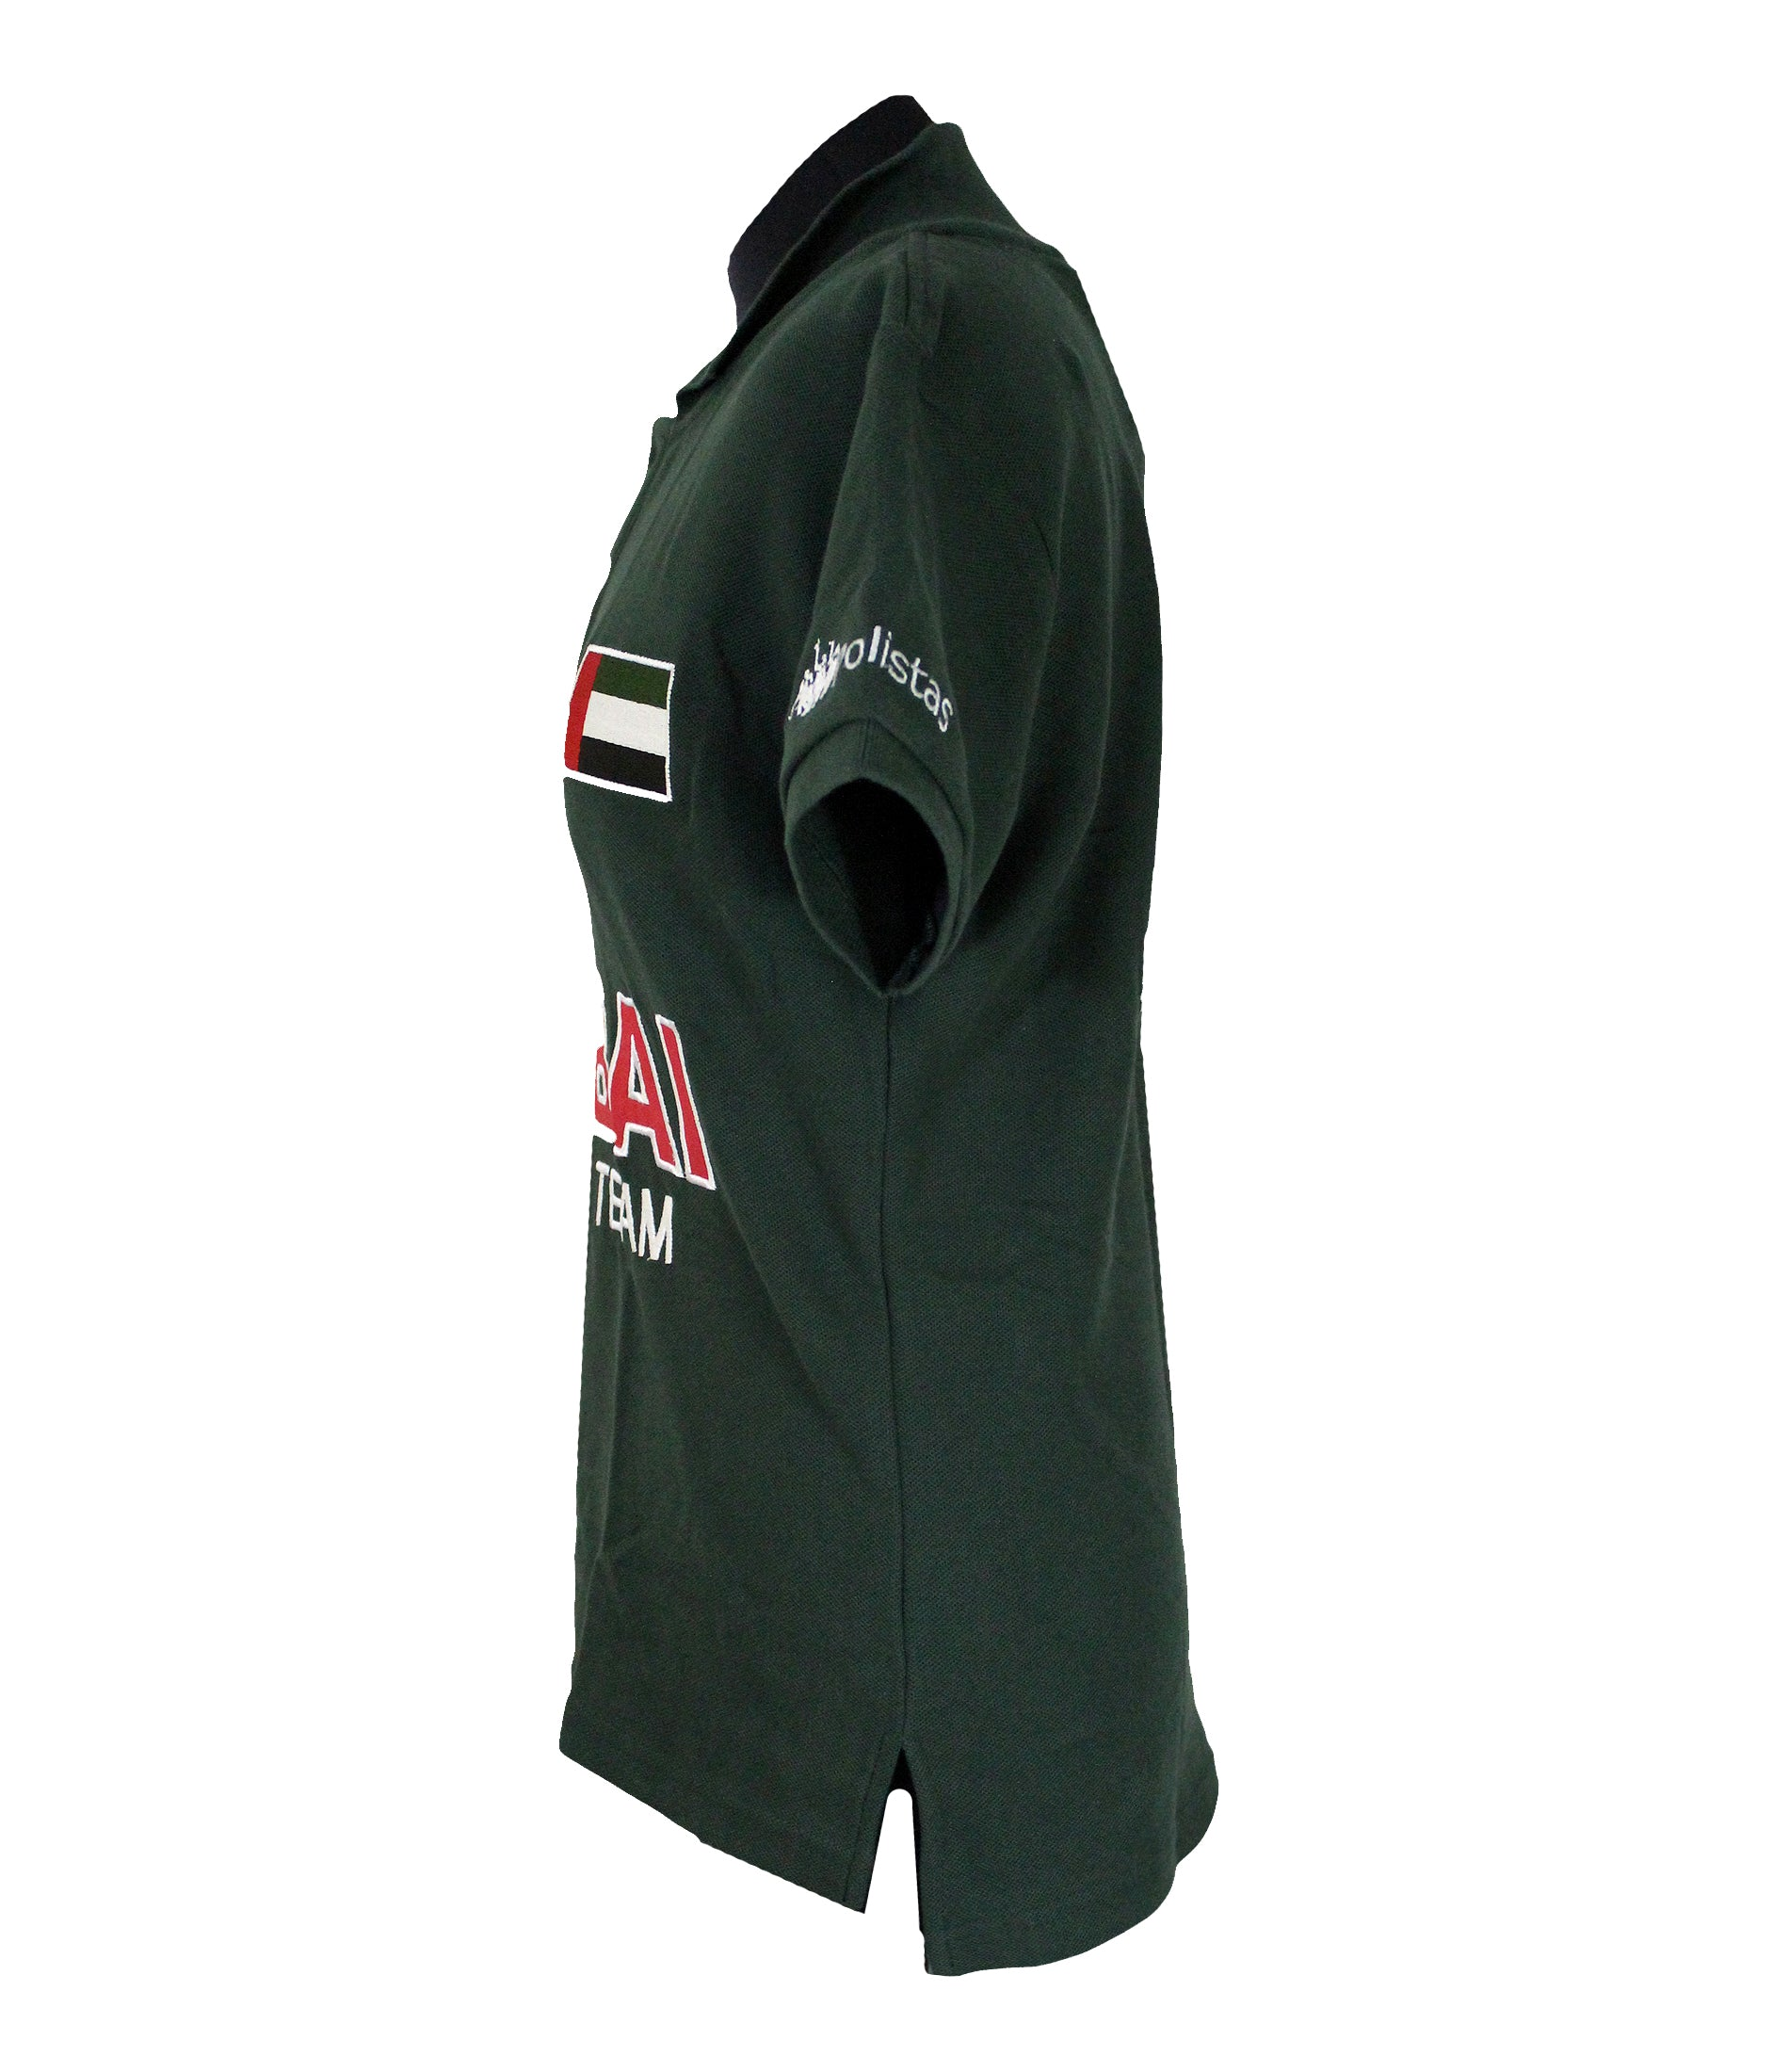 Polistas Ladies Dubai Green Polo Shirt RRP £99.95 NOW £25.00